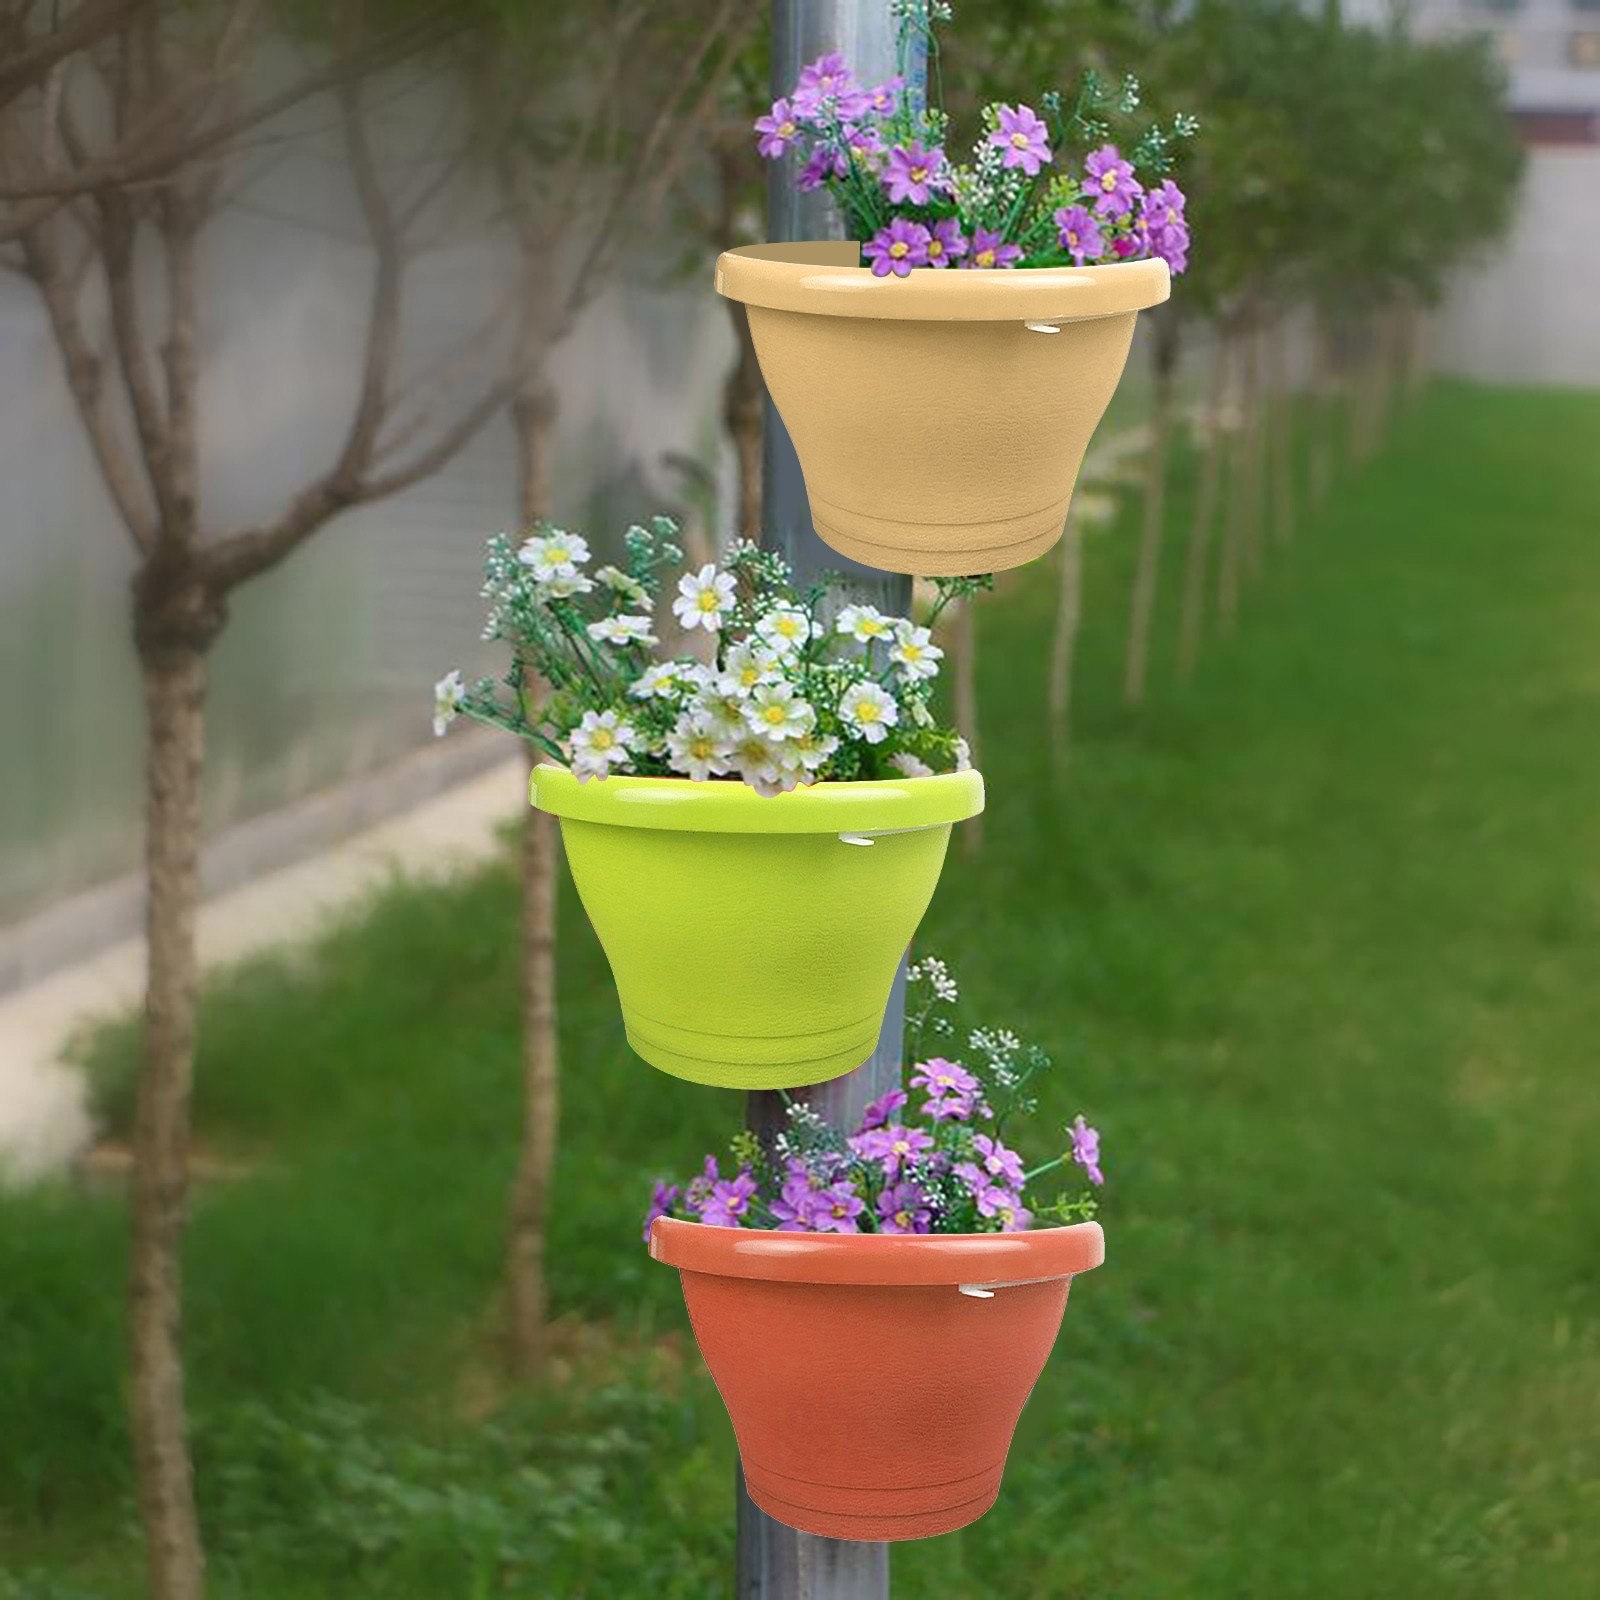 The Flower Pot On The Water Pipe Pvc Pipe Type Hanging Garden Pots Planters Can Be Hung Yard Garden Decor Nursery Pots